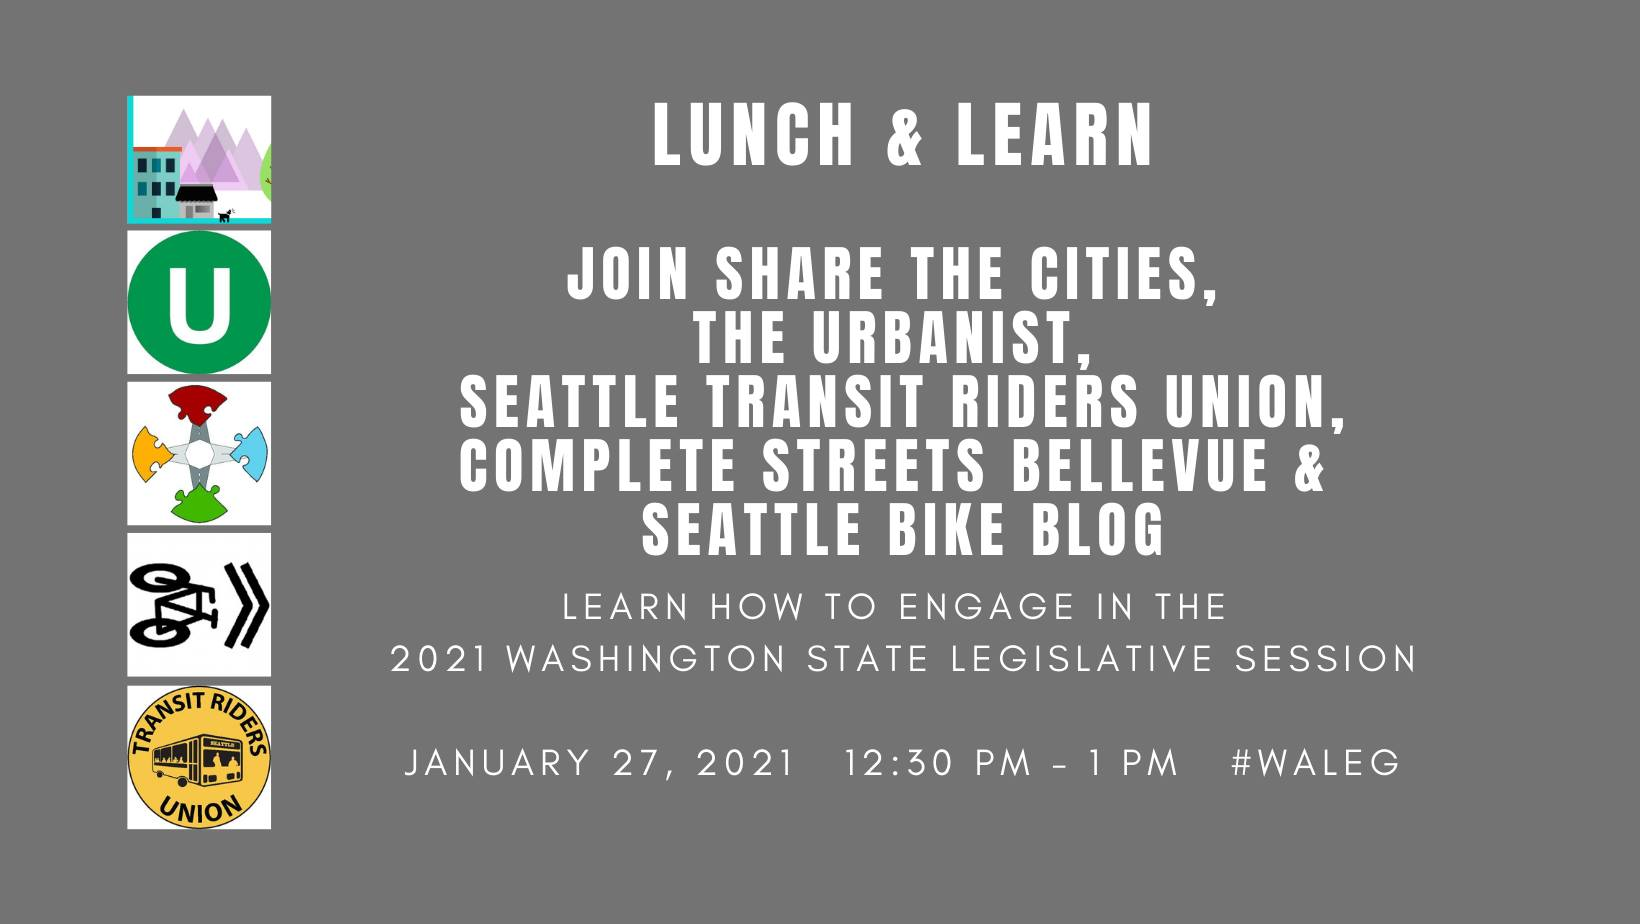 Graphic for lunch and learn with logos from Share the Cities, The Urbanist, Complete Streets Bellevue, Seattle Bike Blog, and Seattle TRU.